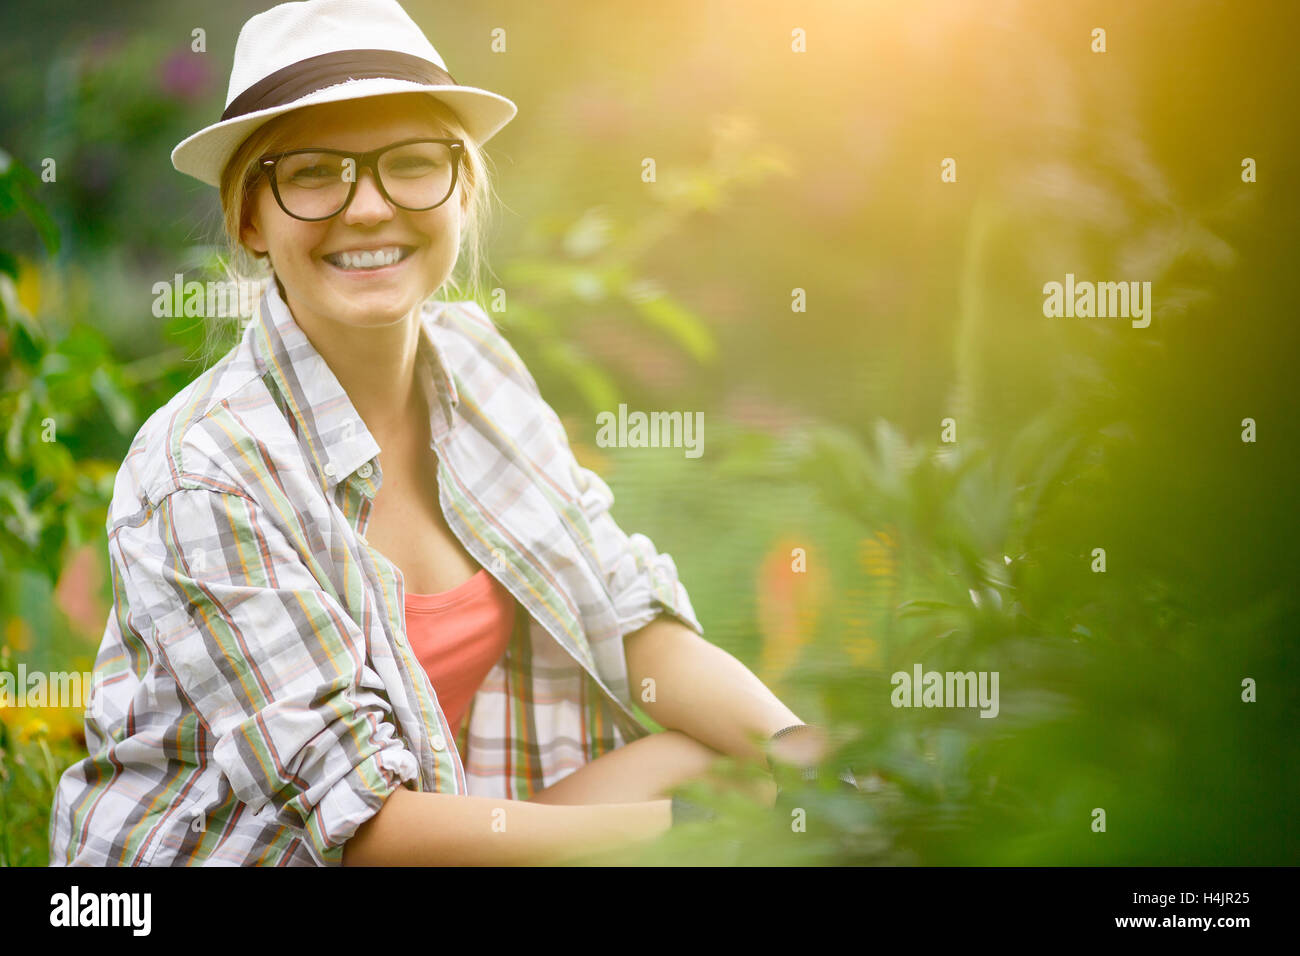 Happy girl farmer takes care of plants in her garden - Stock Image